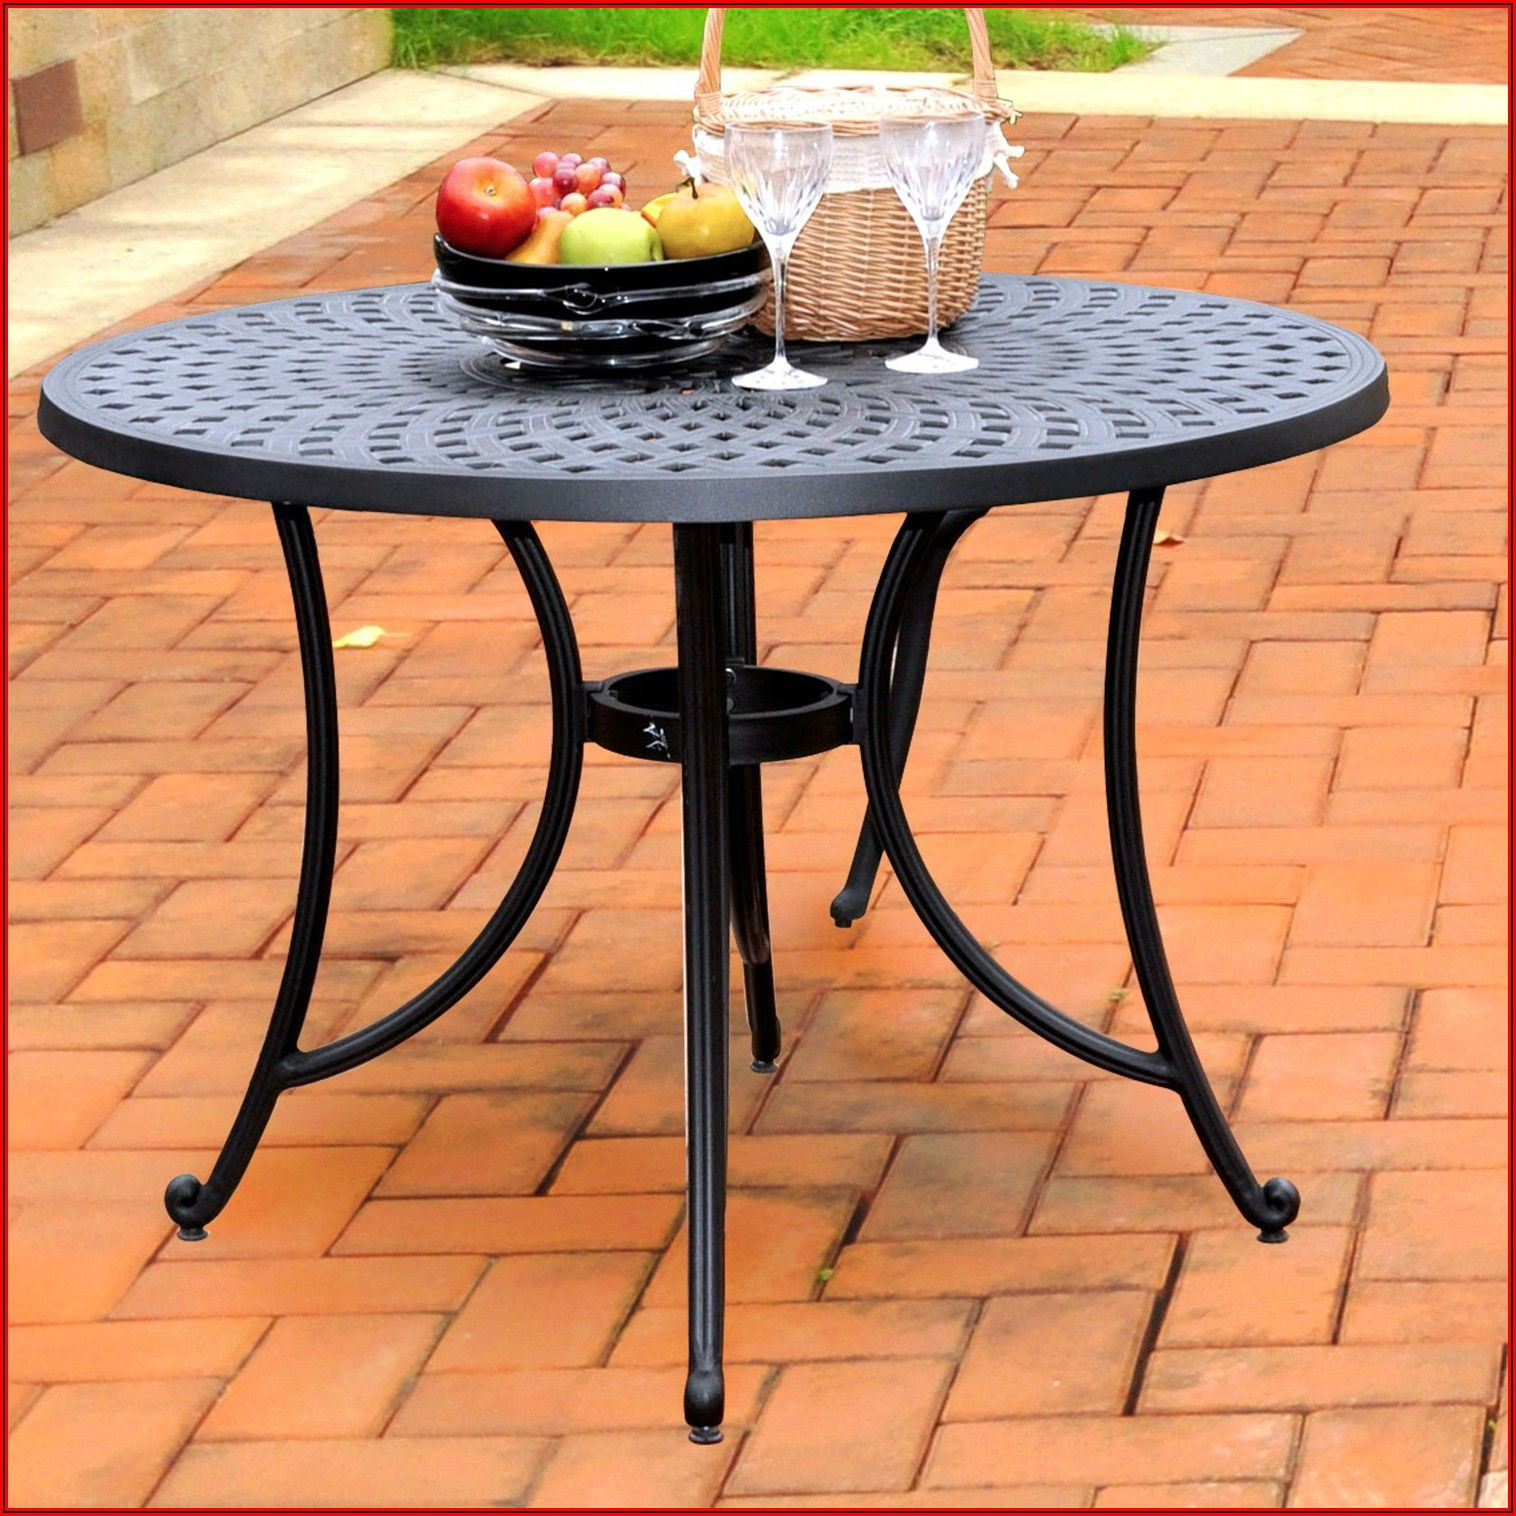 42 Inch Round Patio Table Cover